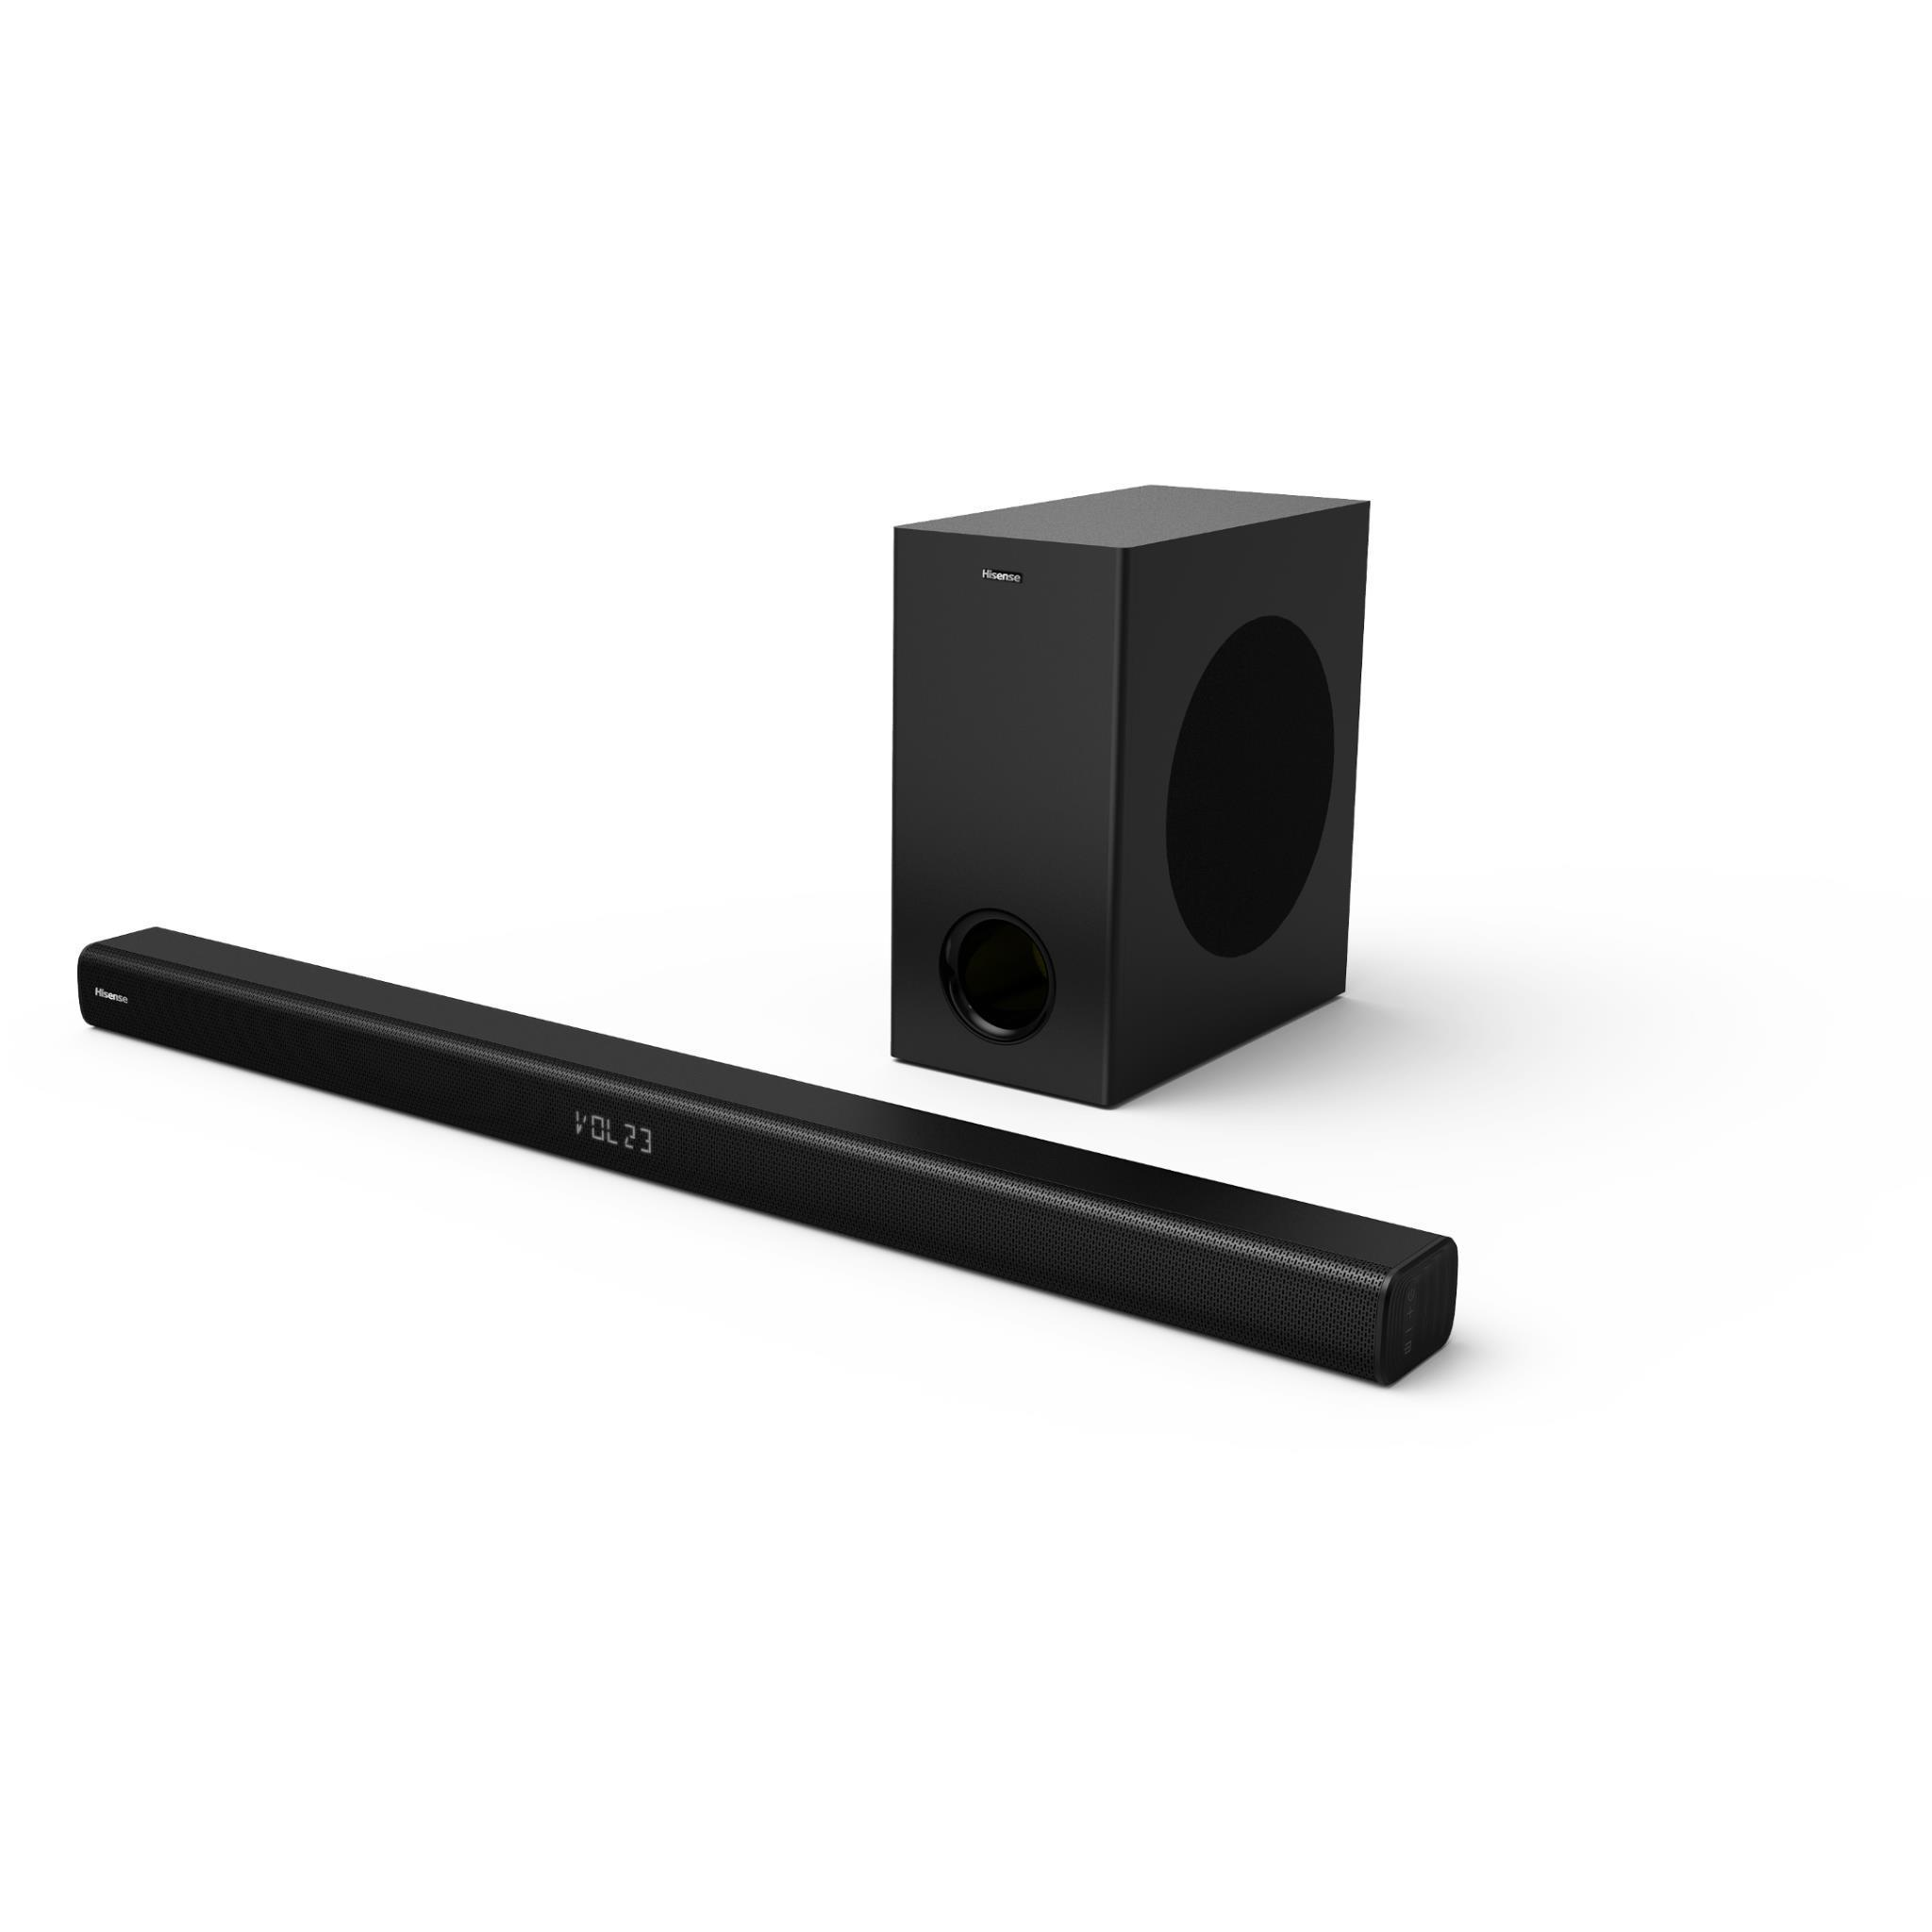 Hisense HS218 2.1 Channel Sounbar with Wiress Subwoofer